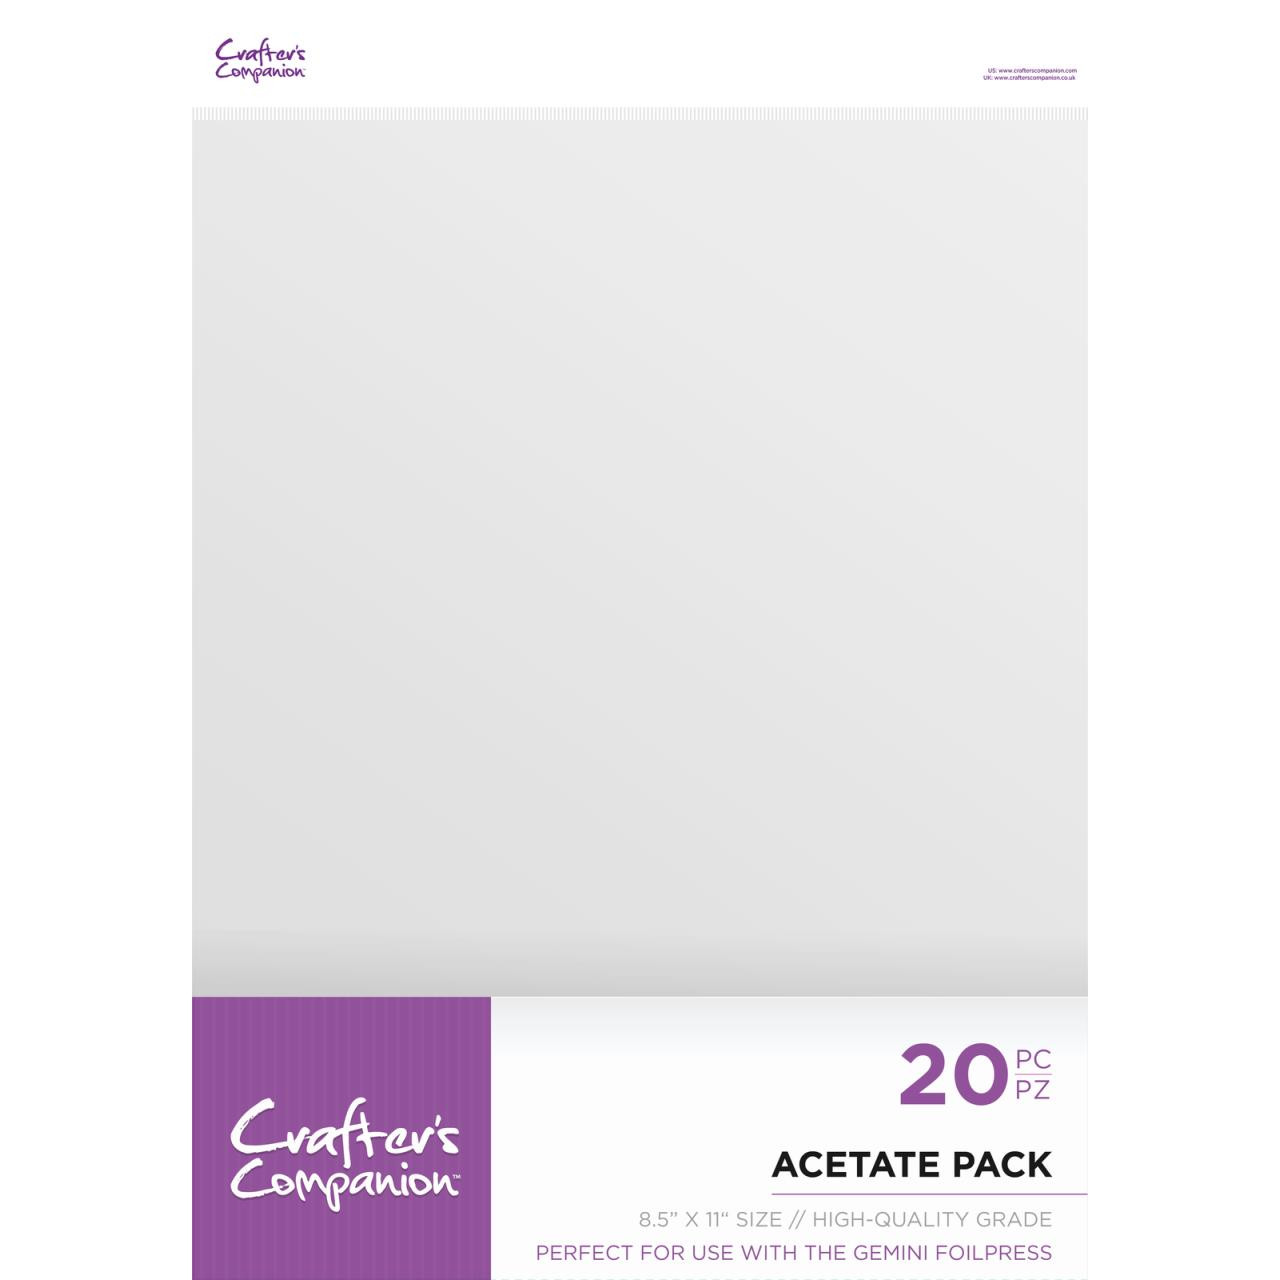 Acetate Pack 8 X 11, Crafter's Companion Paper - 709650877726